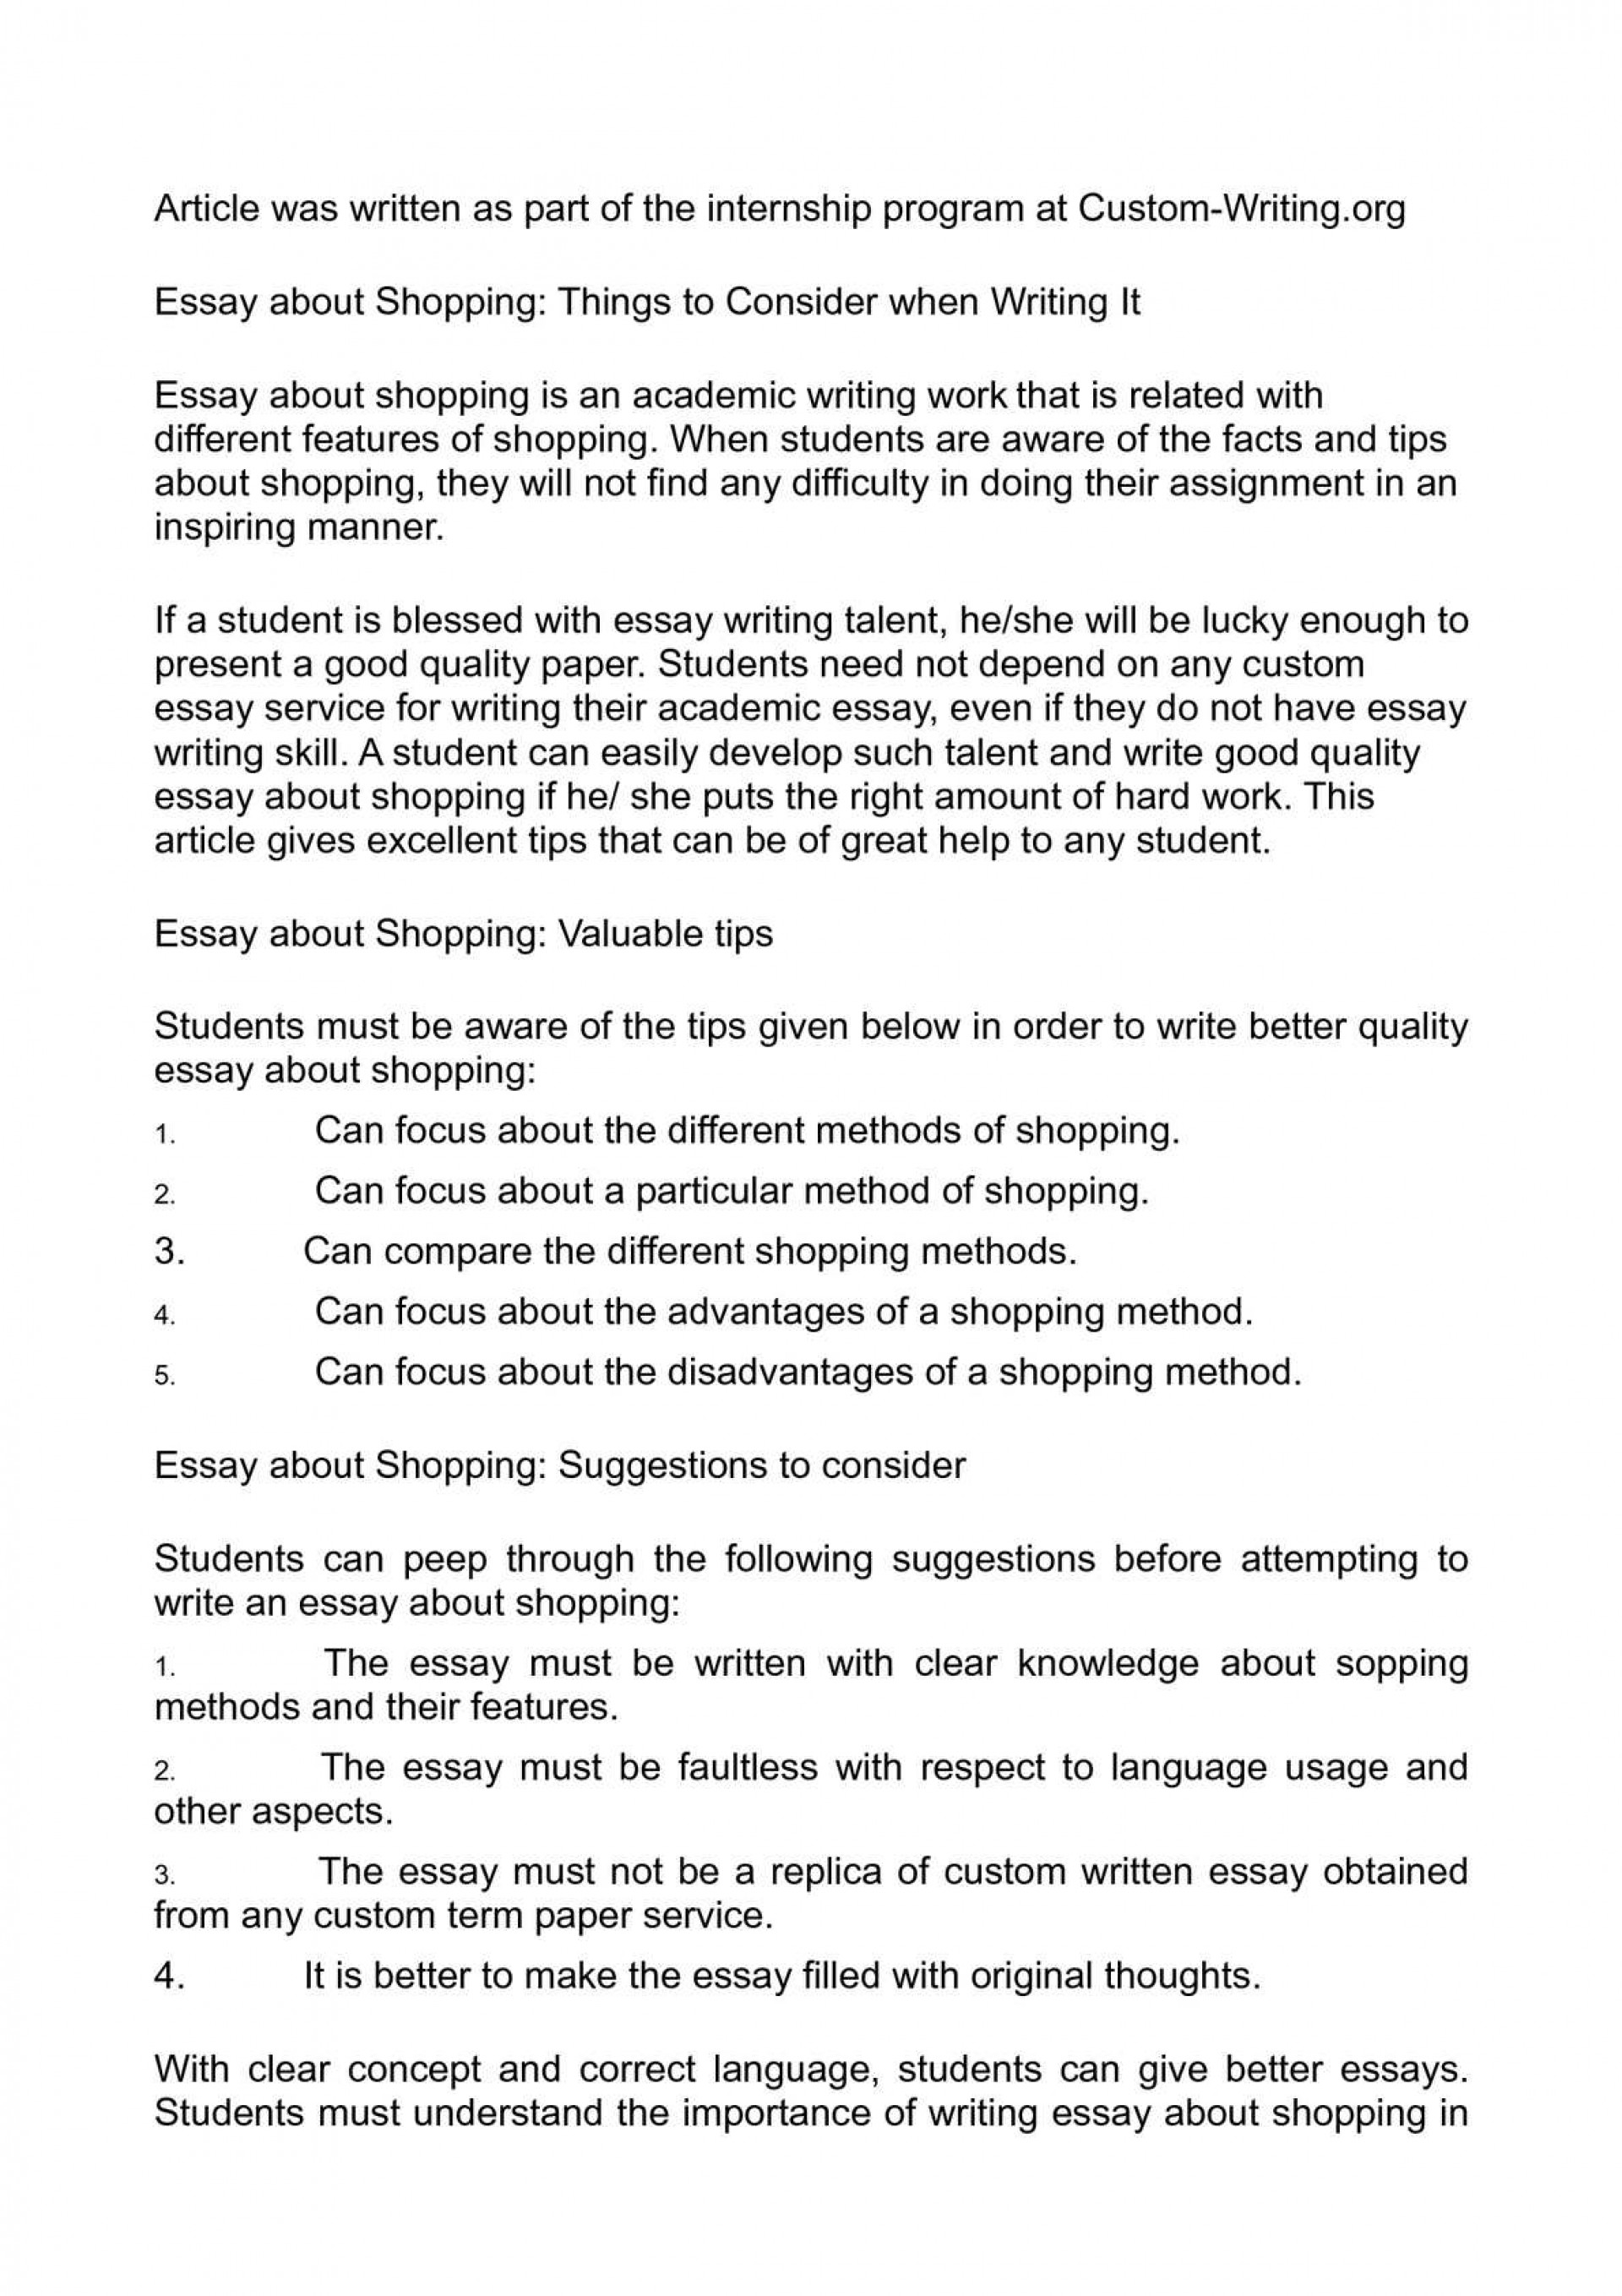 006 How To List Things In An Essay About Shopping Consider When Writing It Of Write Topics What Funny Random Informative Myself Yourself For College Fearsome Correct Way Best 1920